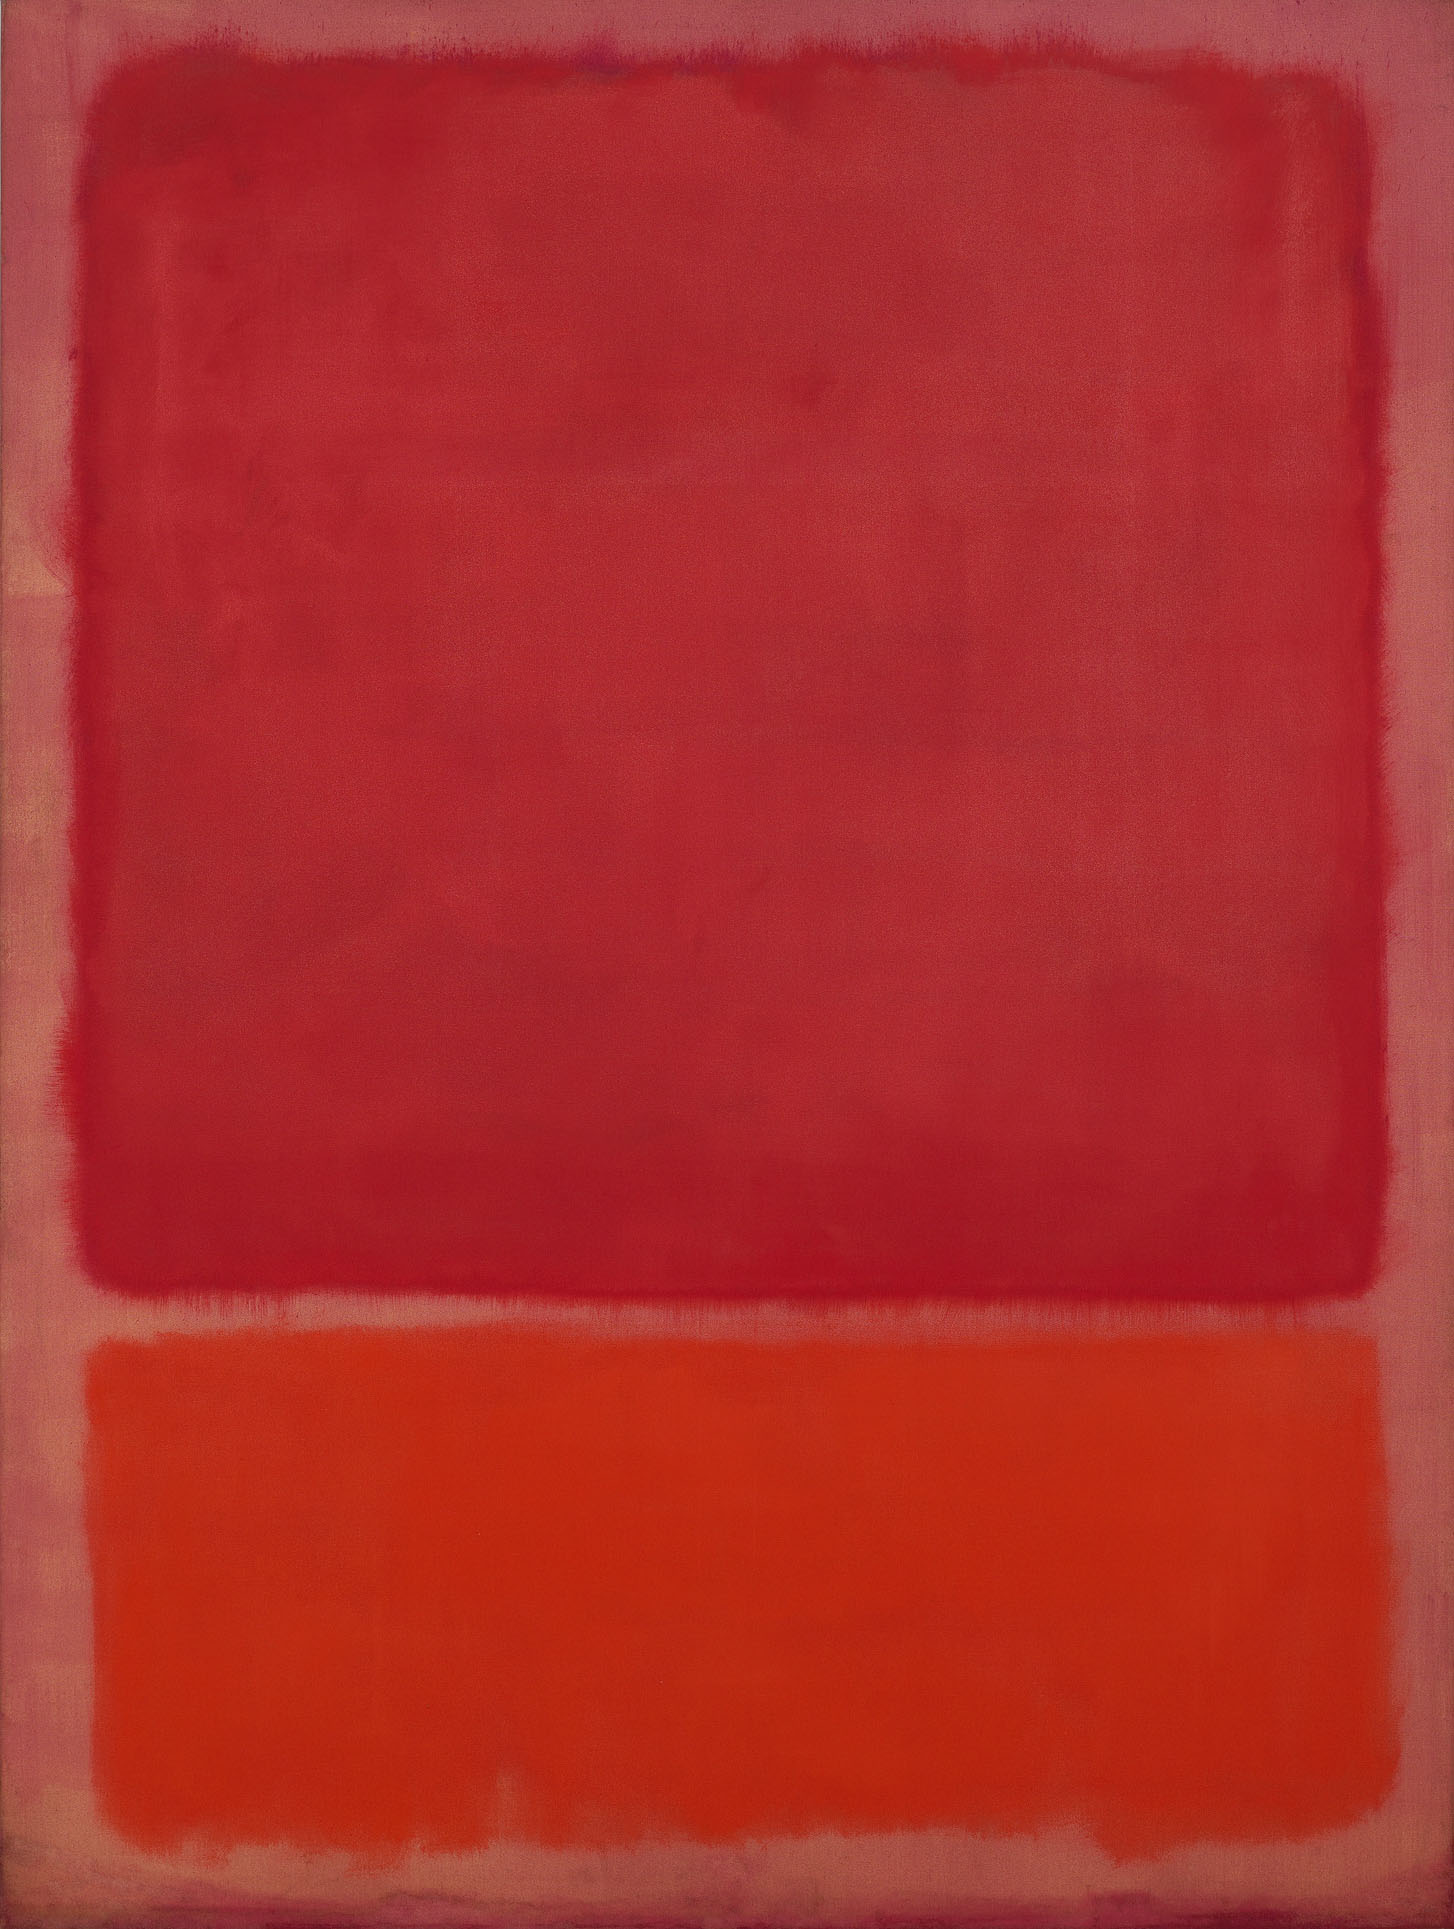 Untitled (Red, Orange), 1968 Mark Rothko Oil on canvas, 91 7/10 × 69 3/10 in | 233 × 176 cm